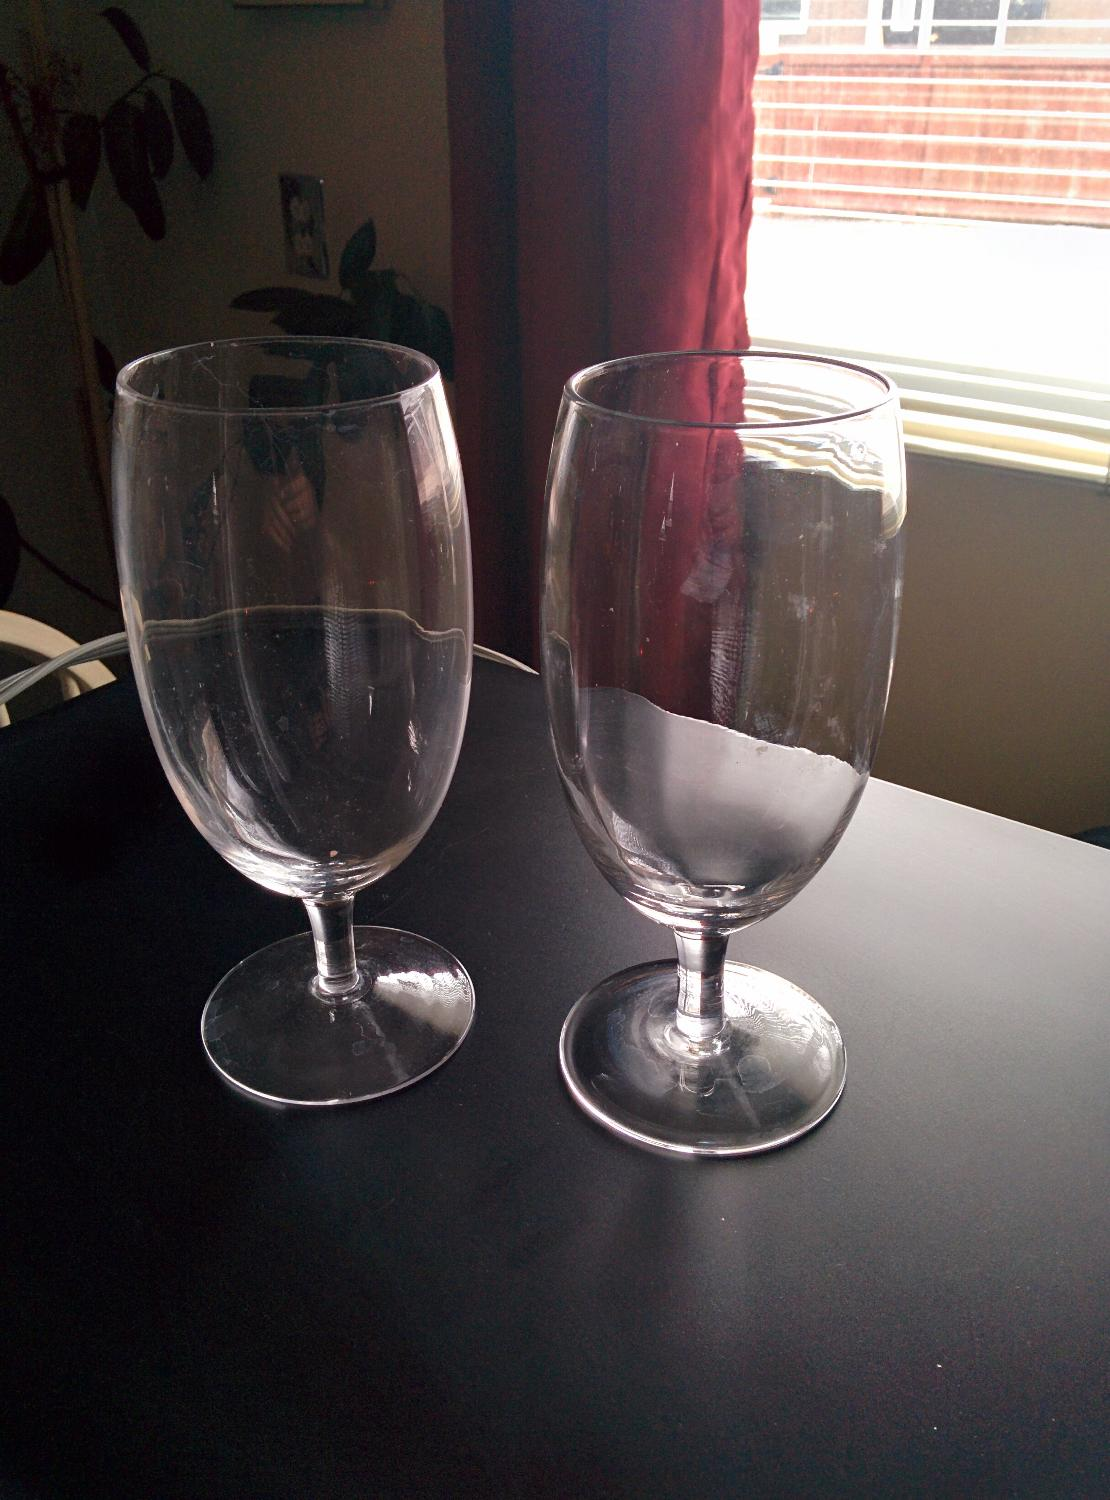 Find More Two Tall Short Stem Wine Glasses For Sale At Up